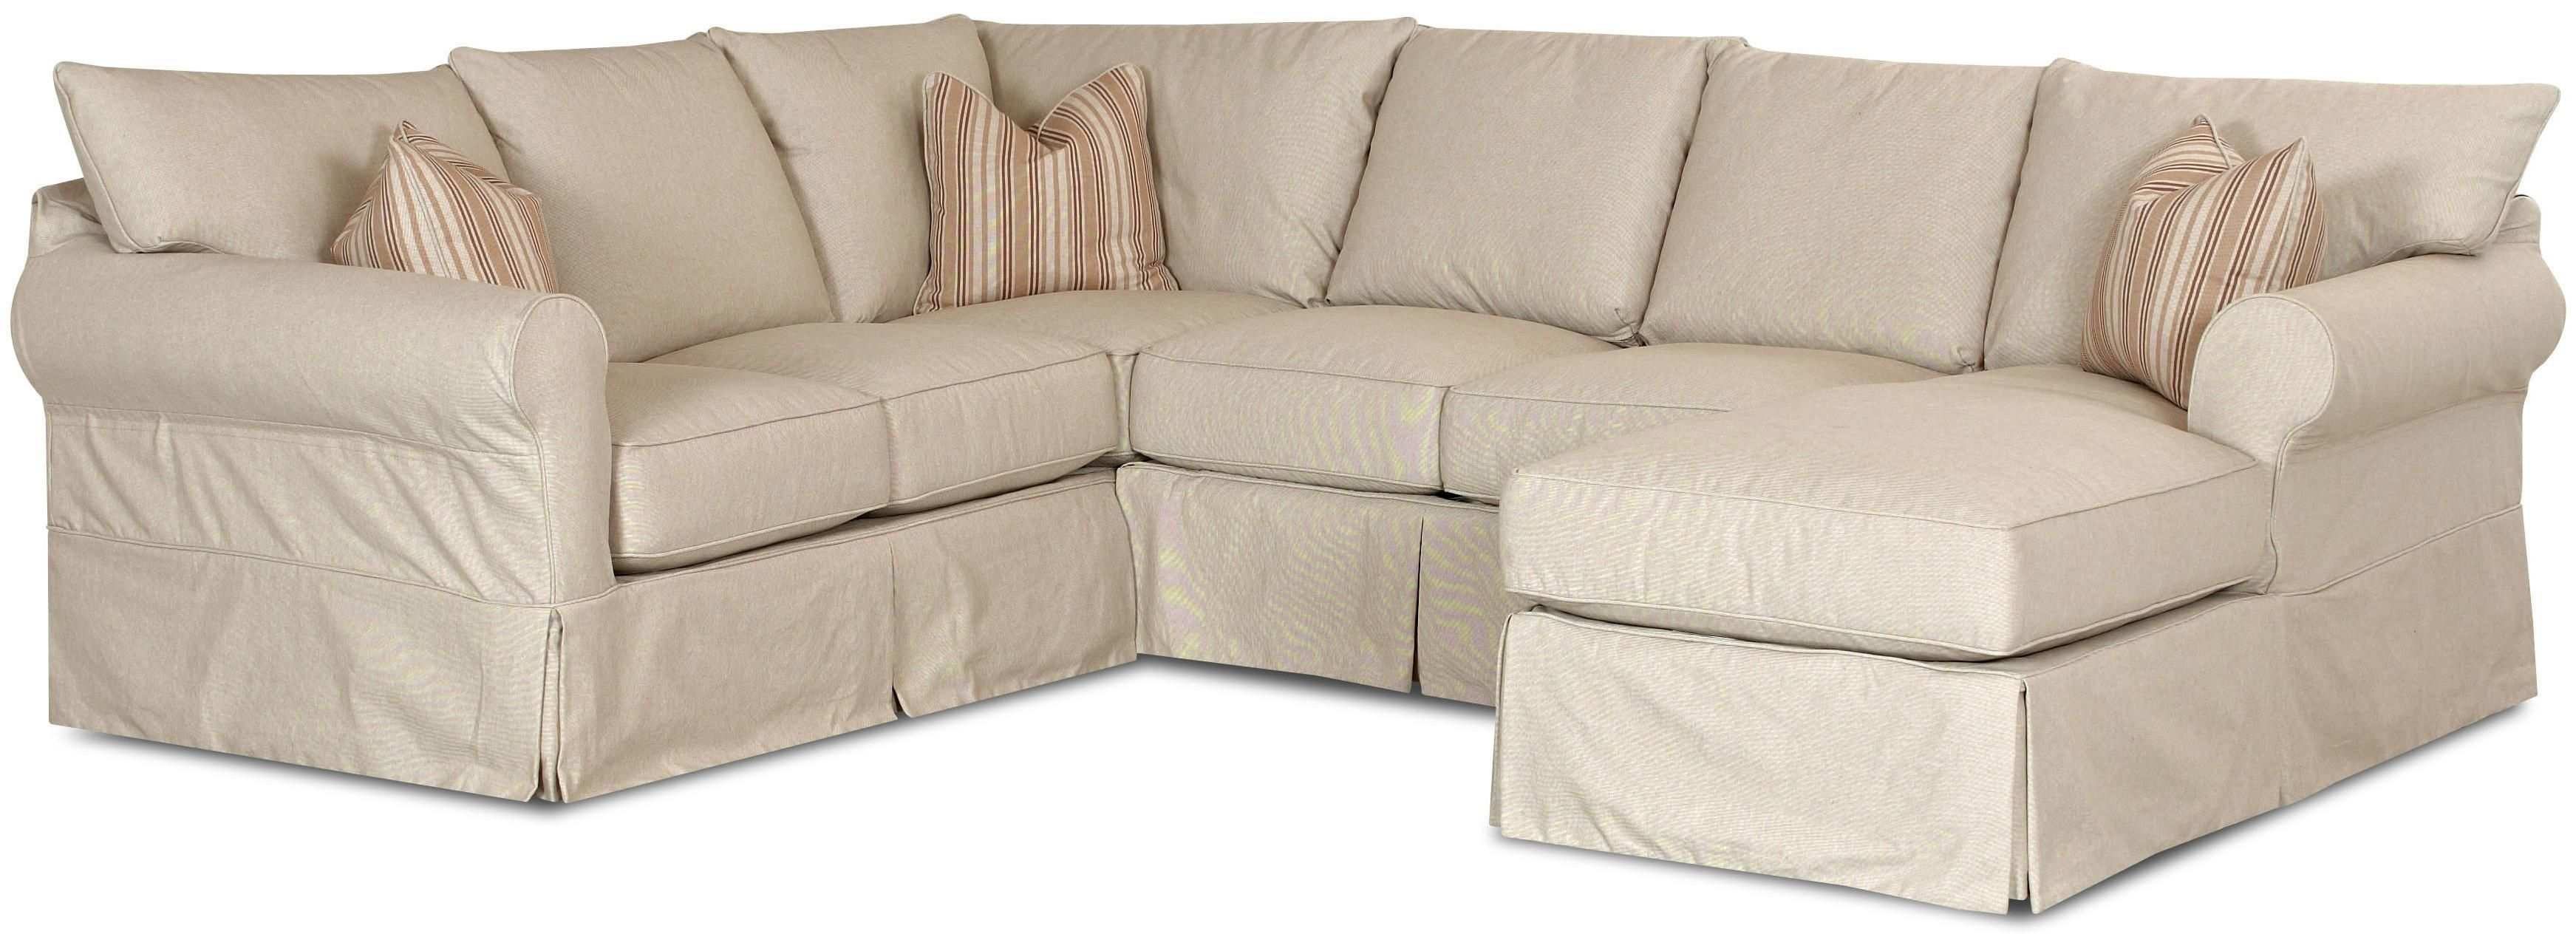 luxury sofa slipcovers cheap collection-Finest sofa Slipcovers Cheap Gallery